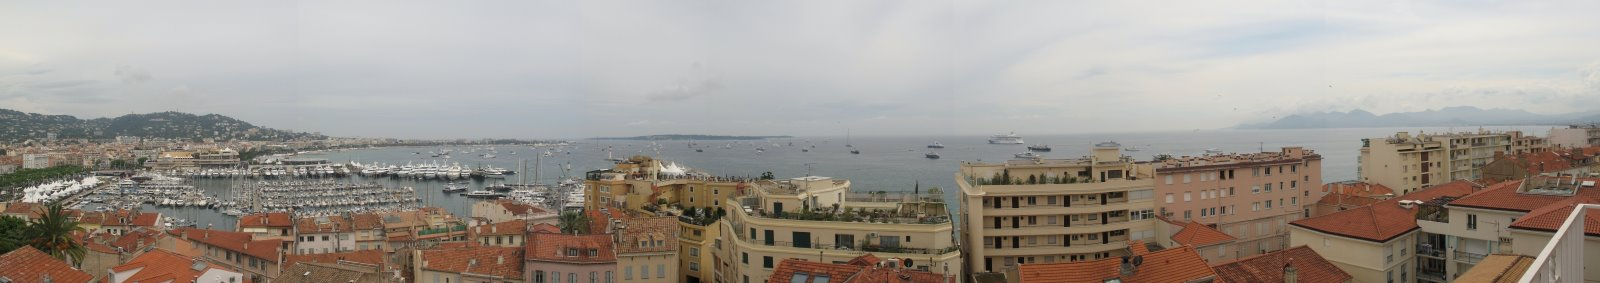 Panoramique du quartier du Suqet, Cannes